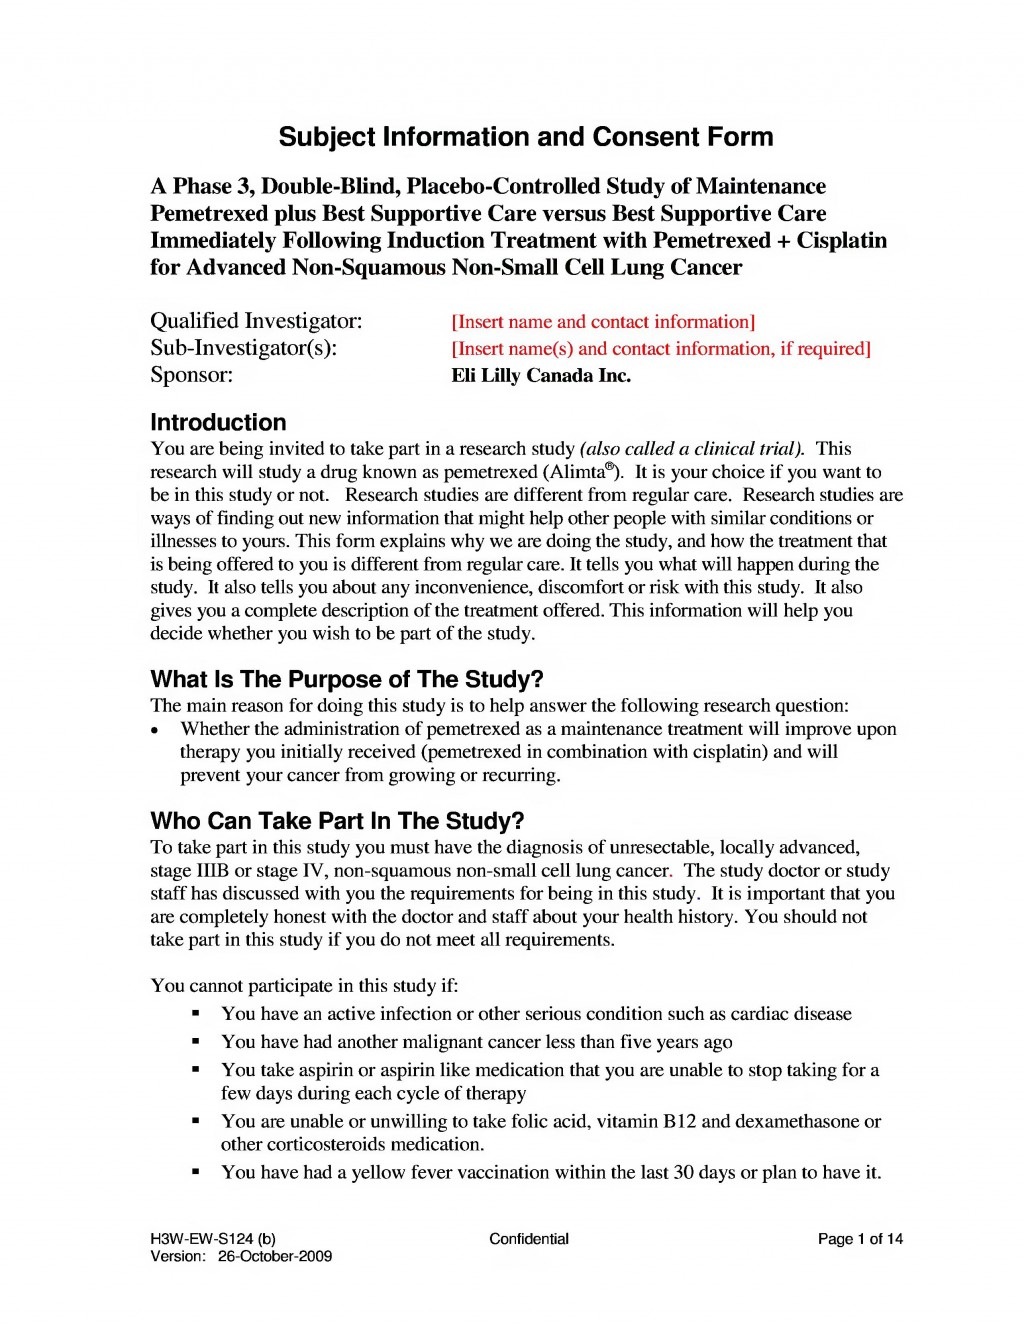 007 Essay Example Page1 2550px Paramount Eli Lilly Informed Consent Document Djvu Beautiful Concussion Outline Examples Conclusion Large